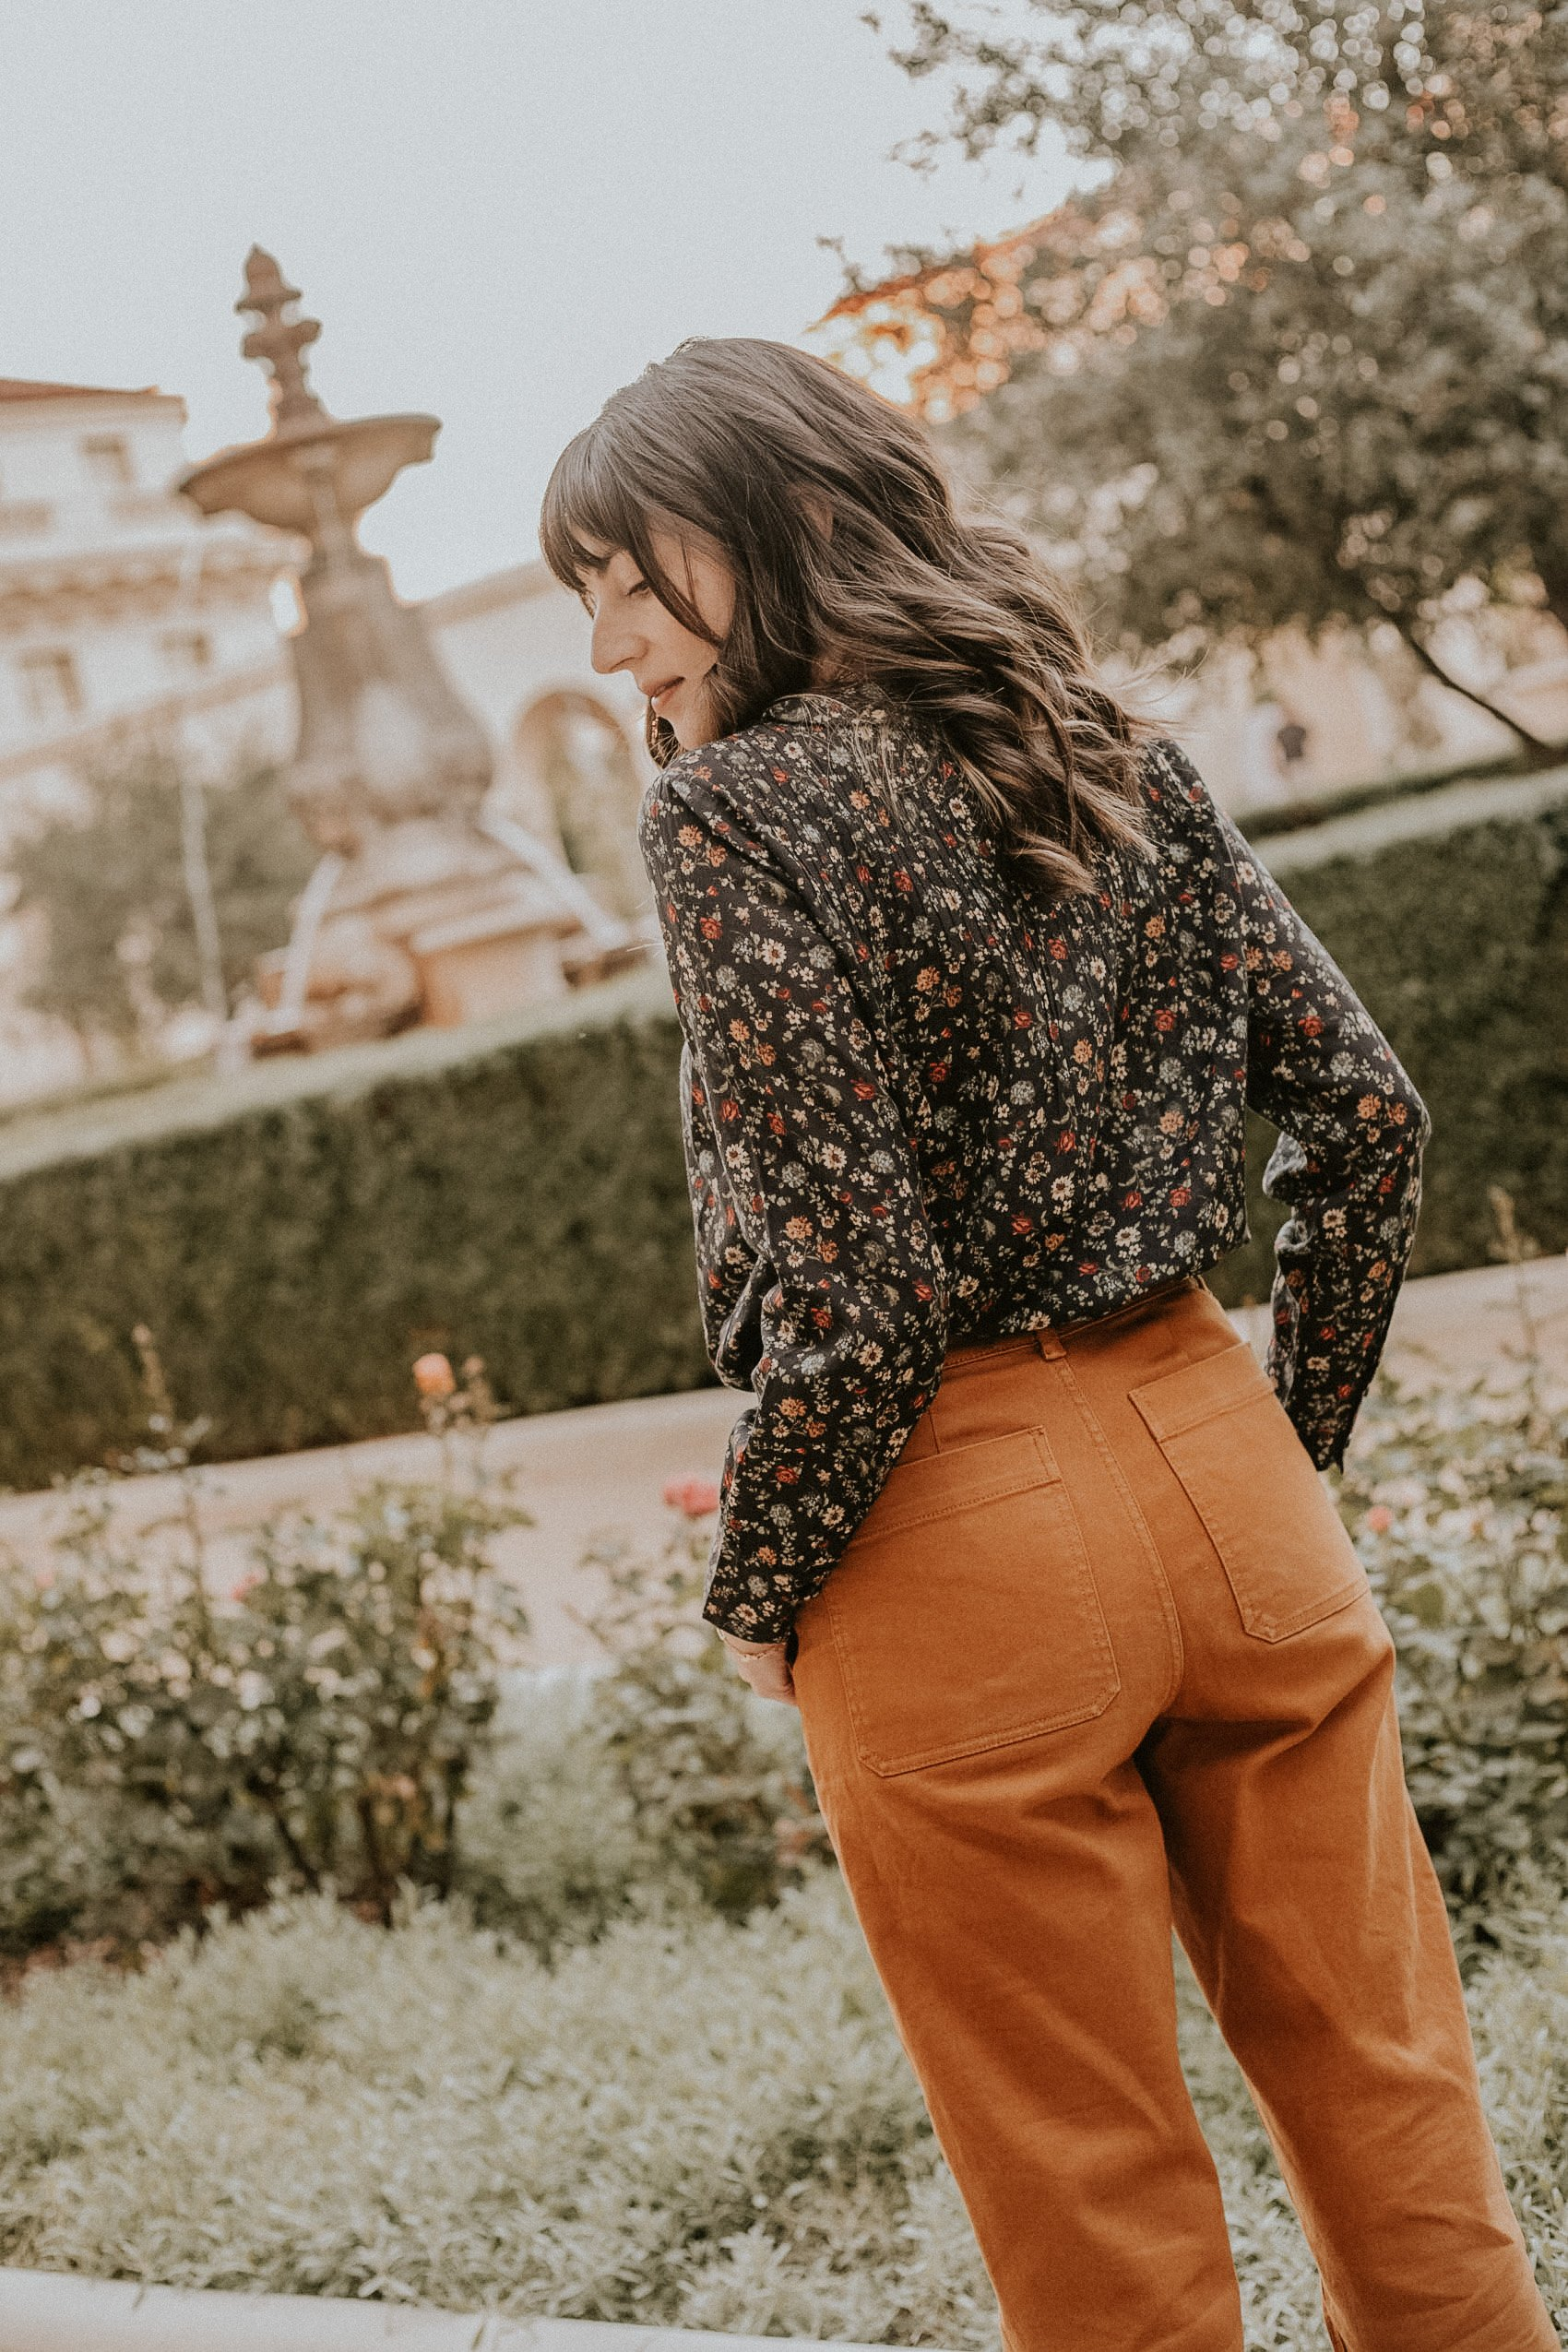 Everlane Straight Leg Pants with dark floral print top from Doen